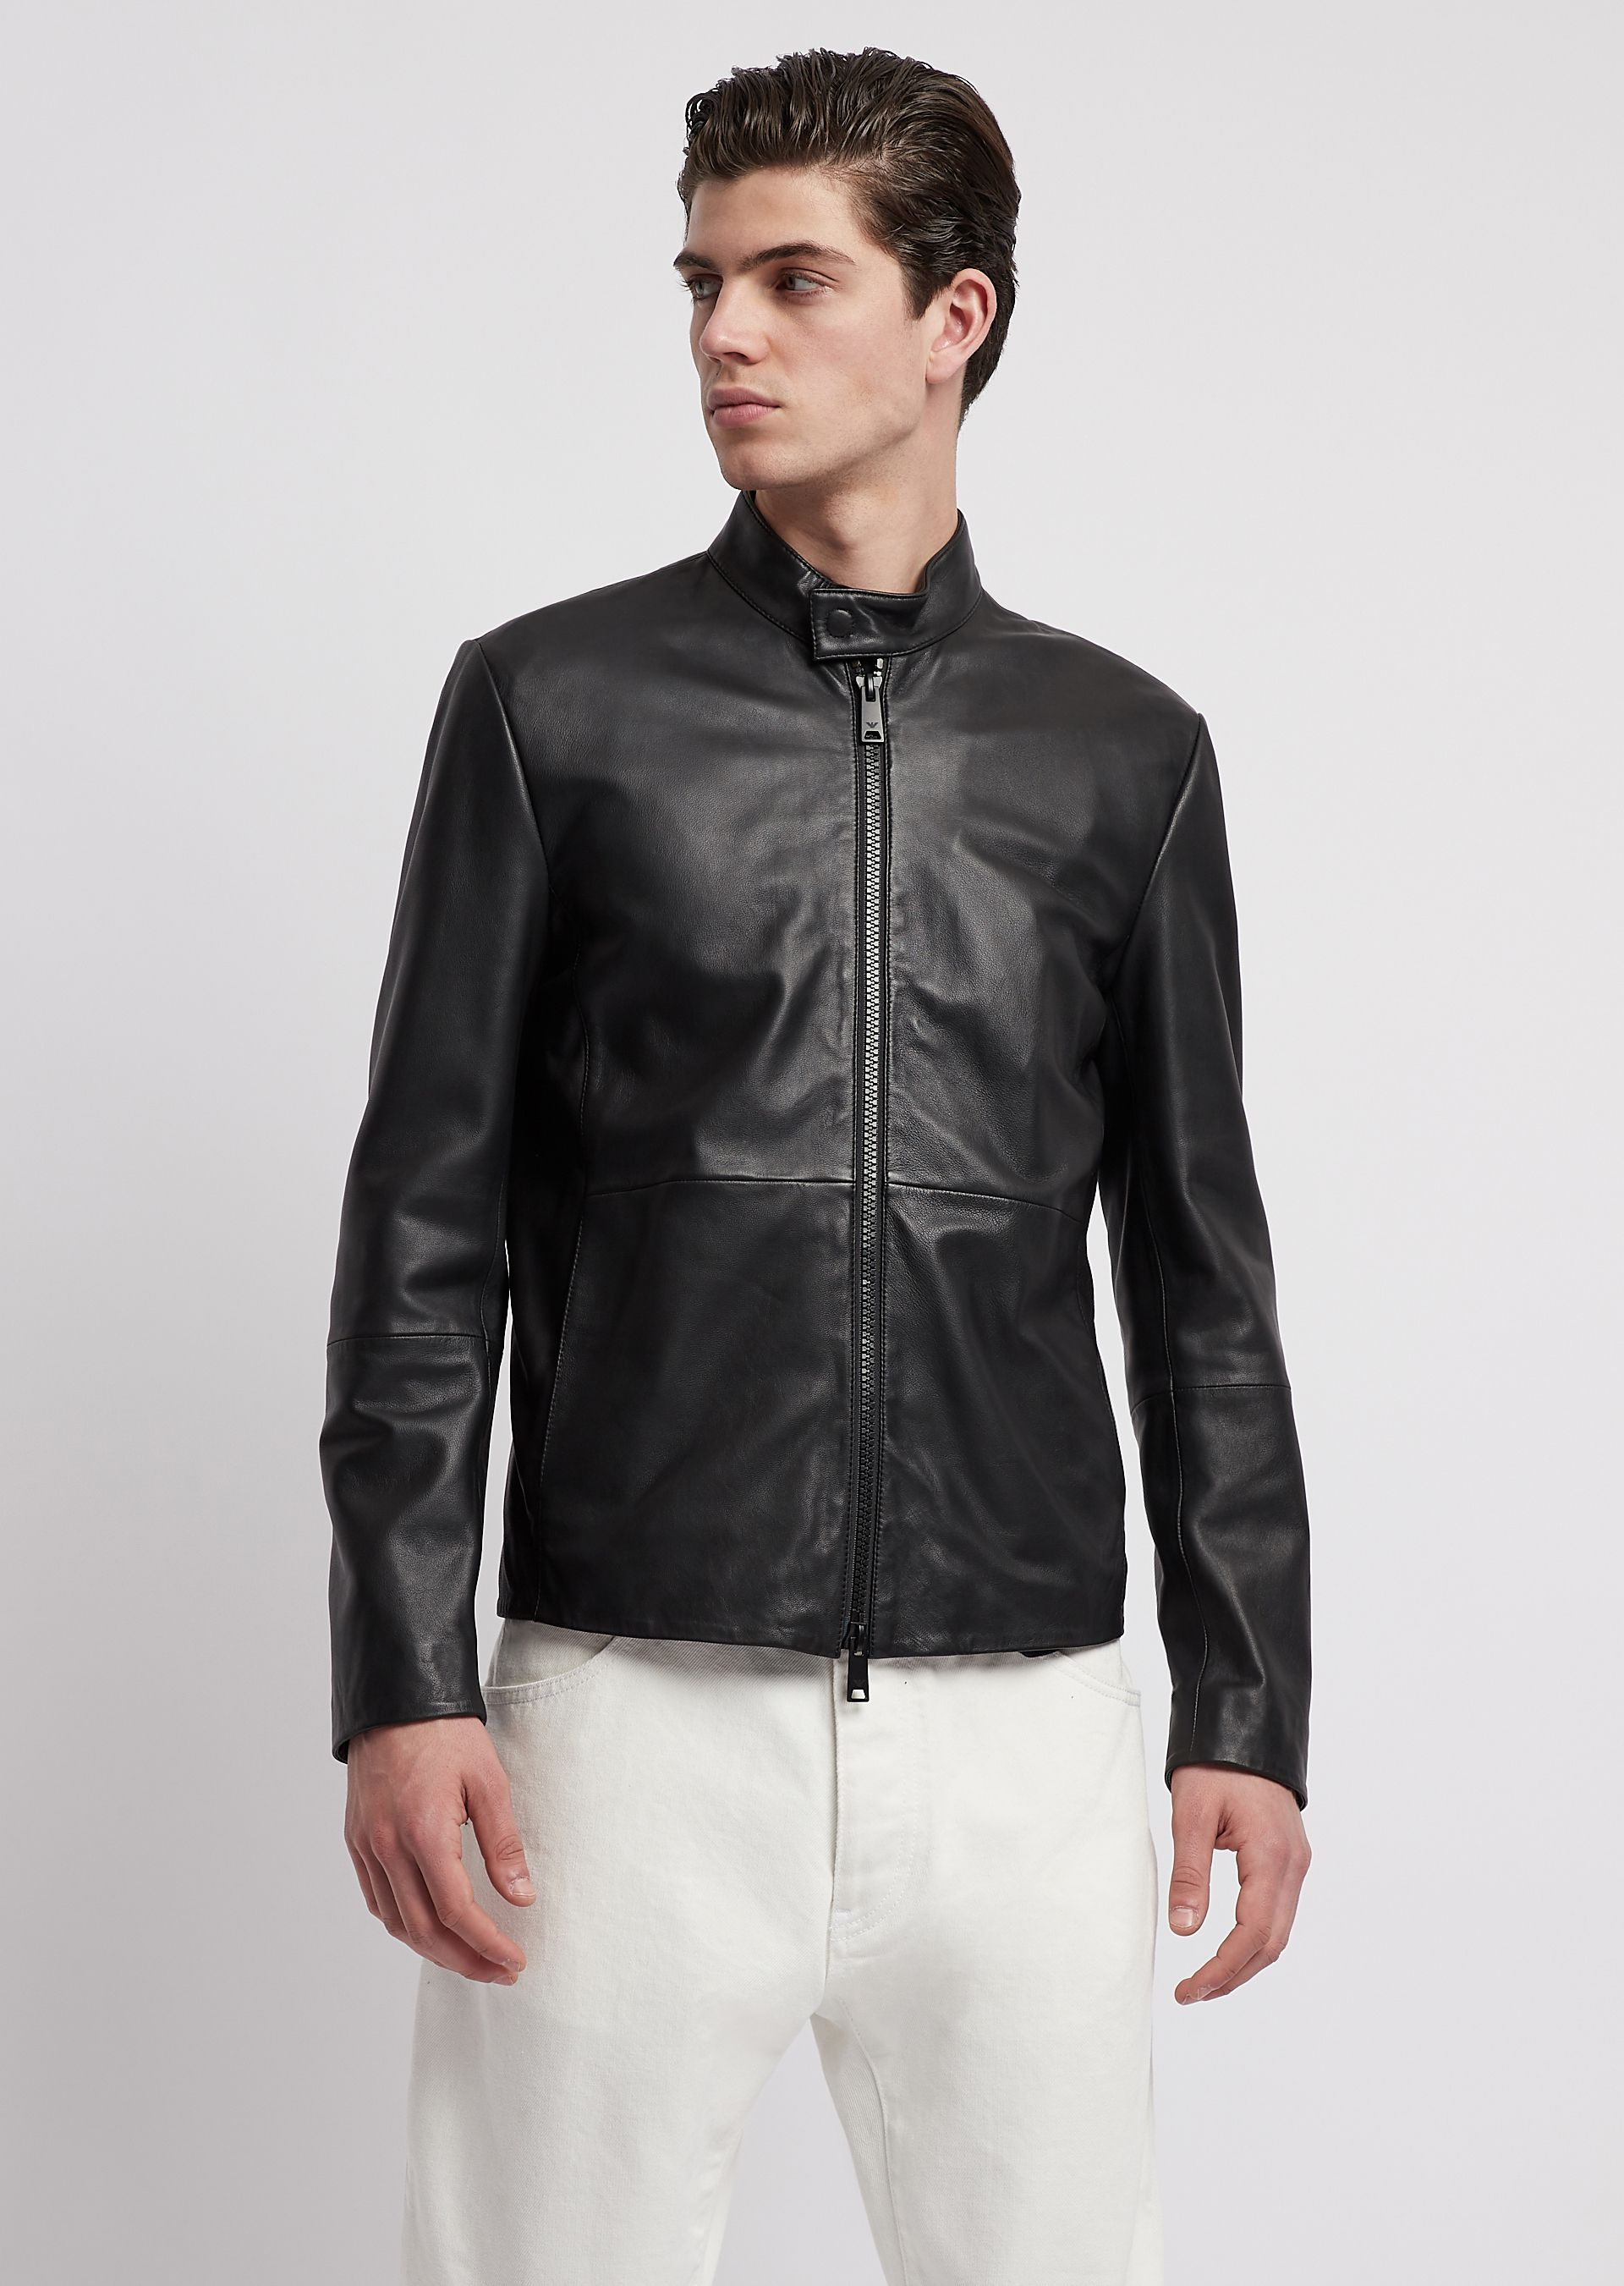 official photos 57095 33caa Giacca biker in pelle Emporio Armani